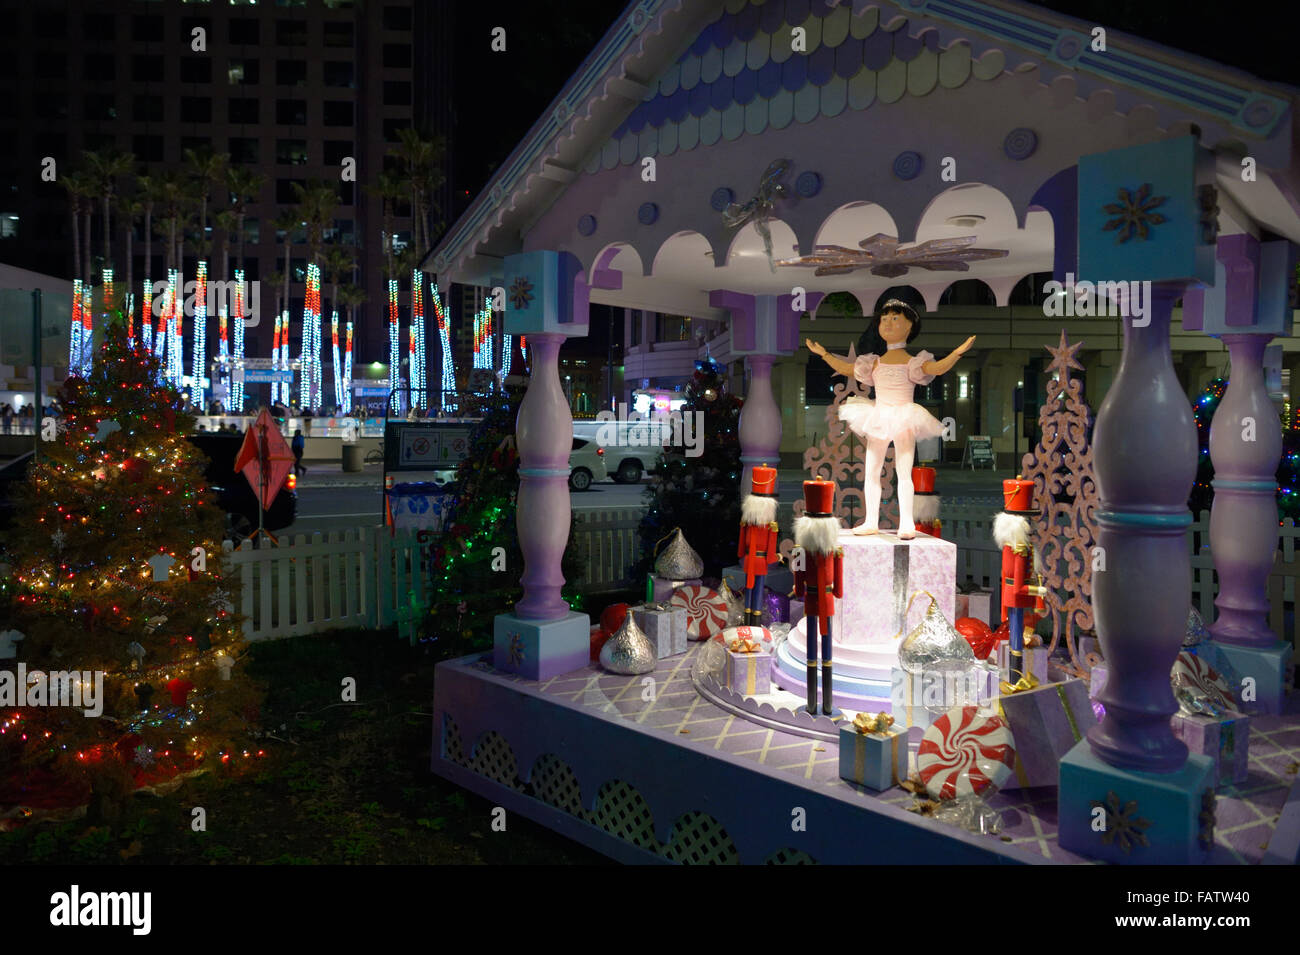 Christmas In The Park San Jose.Christmas In The Park San Jose Ca Stock Photo 92744960 Alamy